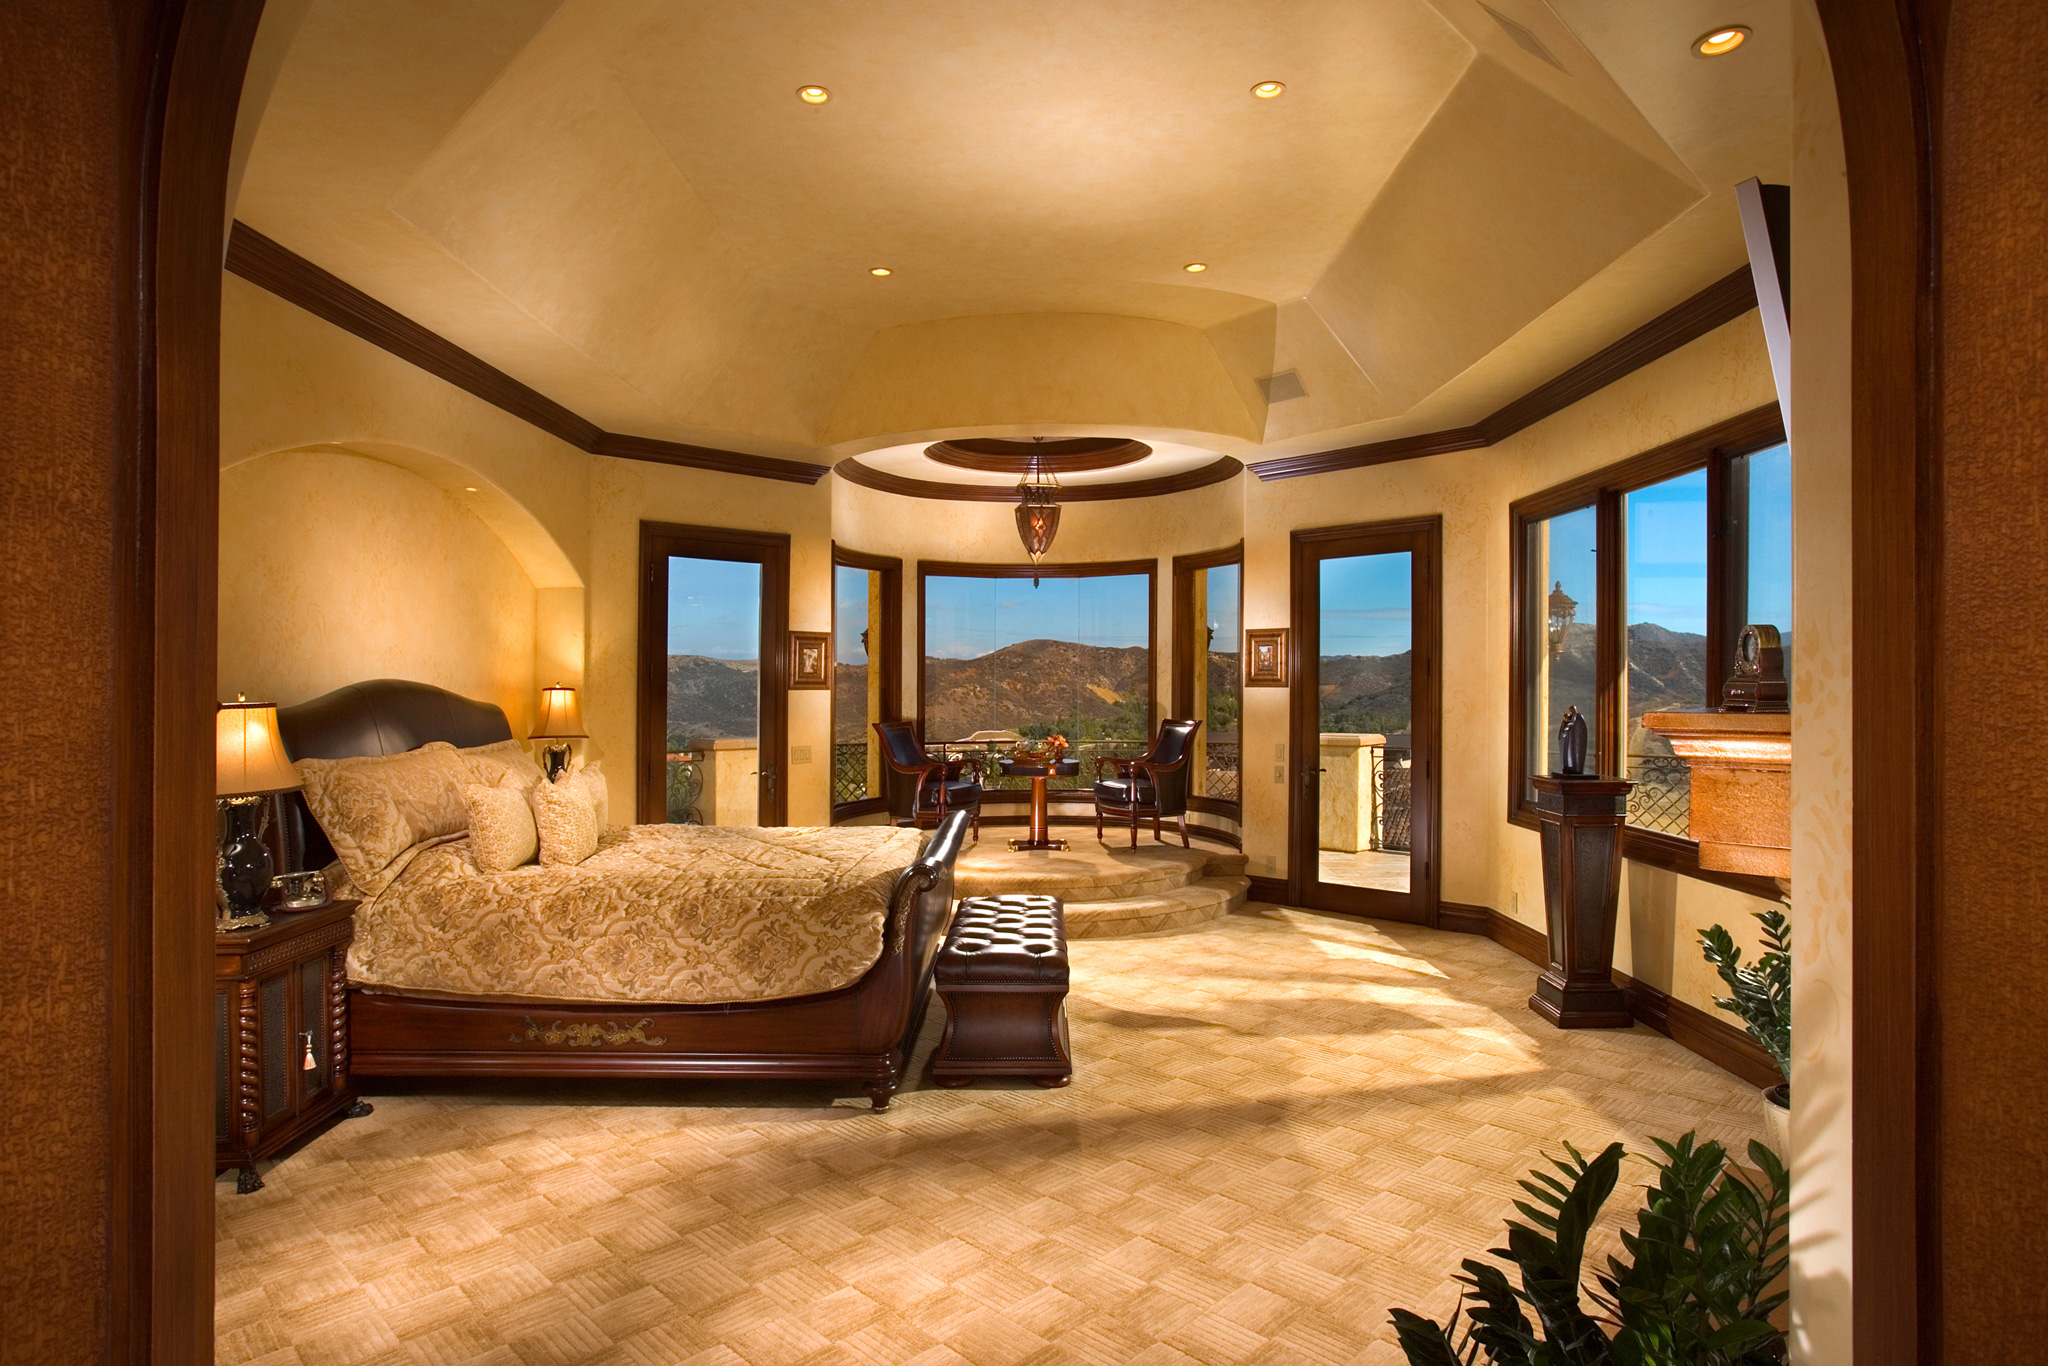 luxury master bedroom designs from hgsphere - Master Bedrooms